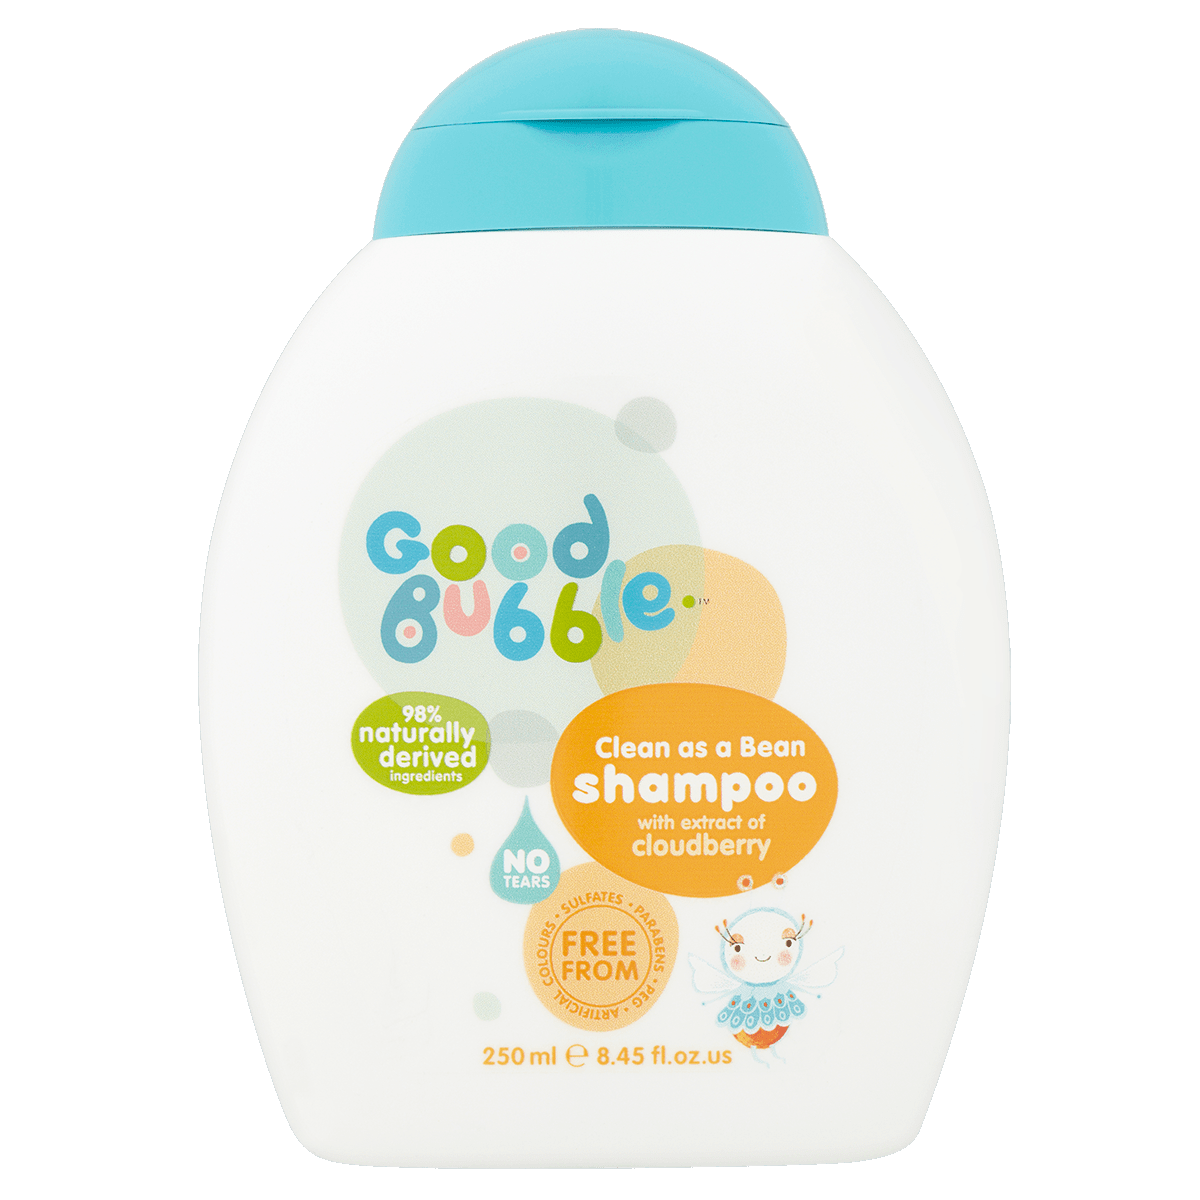 Clean As A Bean Shampoo With Cloudberry Extract